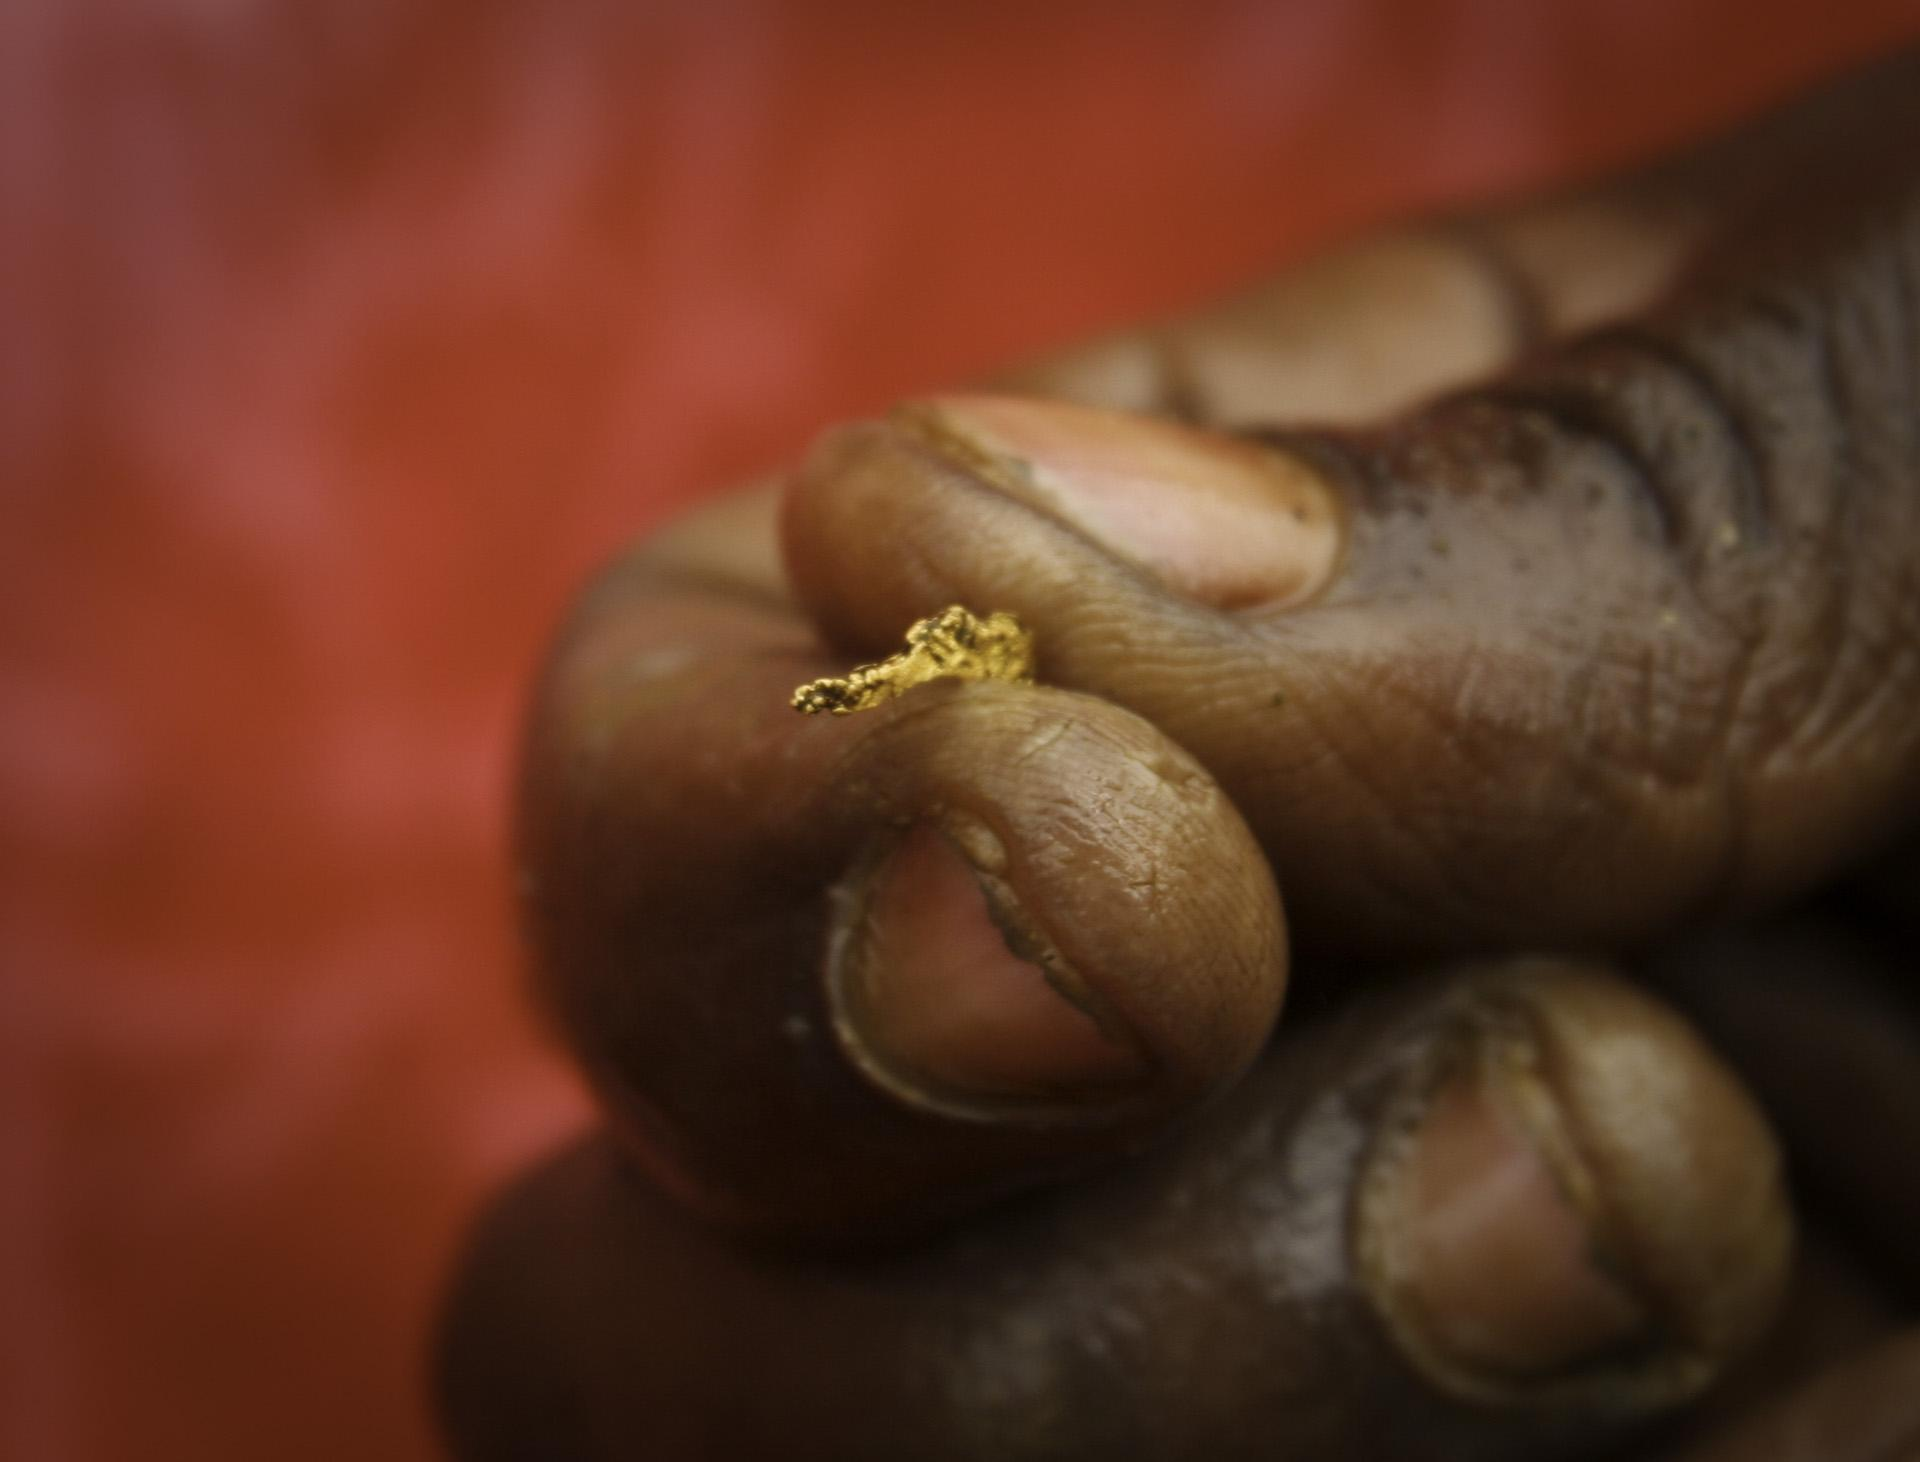 A tiny nugget of gold found at an artisanal gold mine in Montgbawalu.  A find like this is few and far in between. Most workers trade their labor for a few buckets of mud from the mines, hoping to find enough flakes of the metal to feed their families.